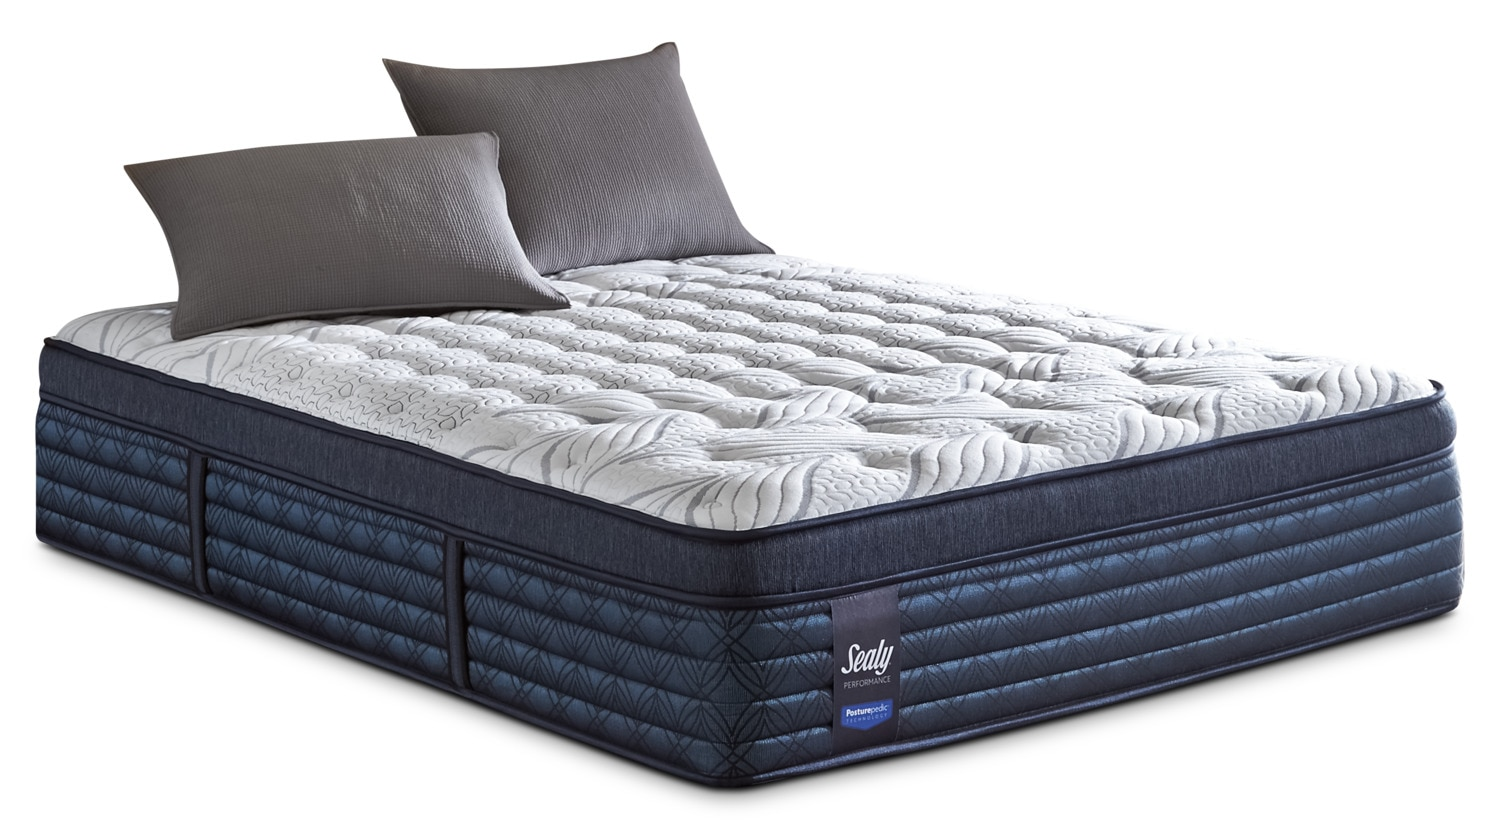 Mattresses and Bedding - Sealy Posturepedic ProBack Hockenheim Euro-Top Firm Full Mattress